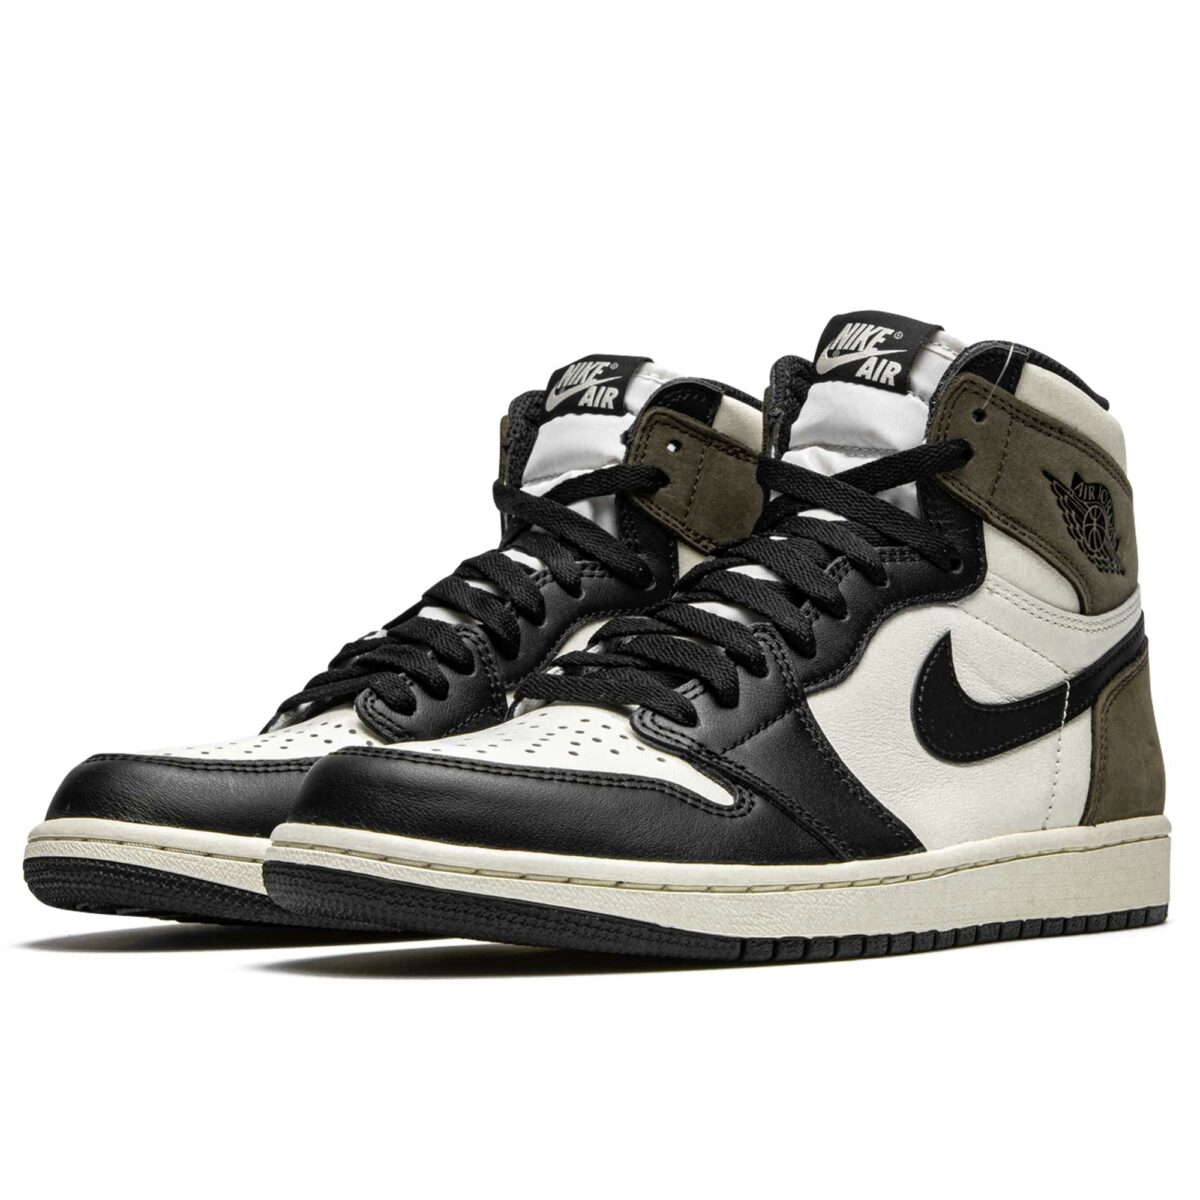 nike air Jordan 1 retro jogh og dark mocha 555088_105 купить